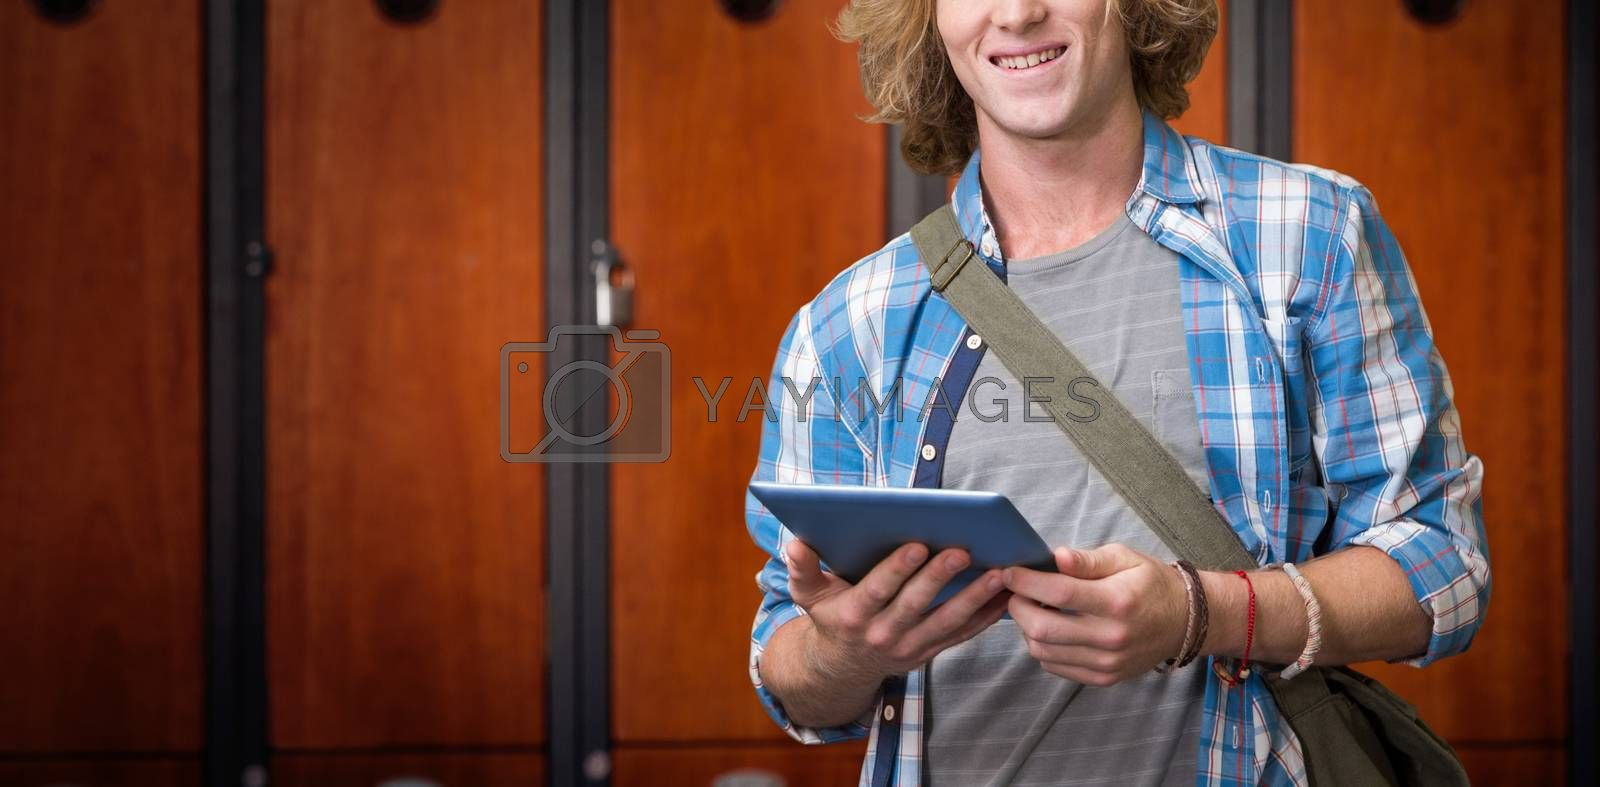 Composite image of student using tablet in library  by Wavebreakmedia